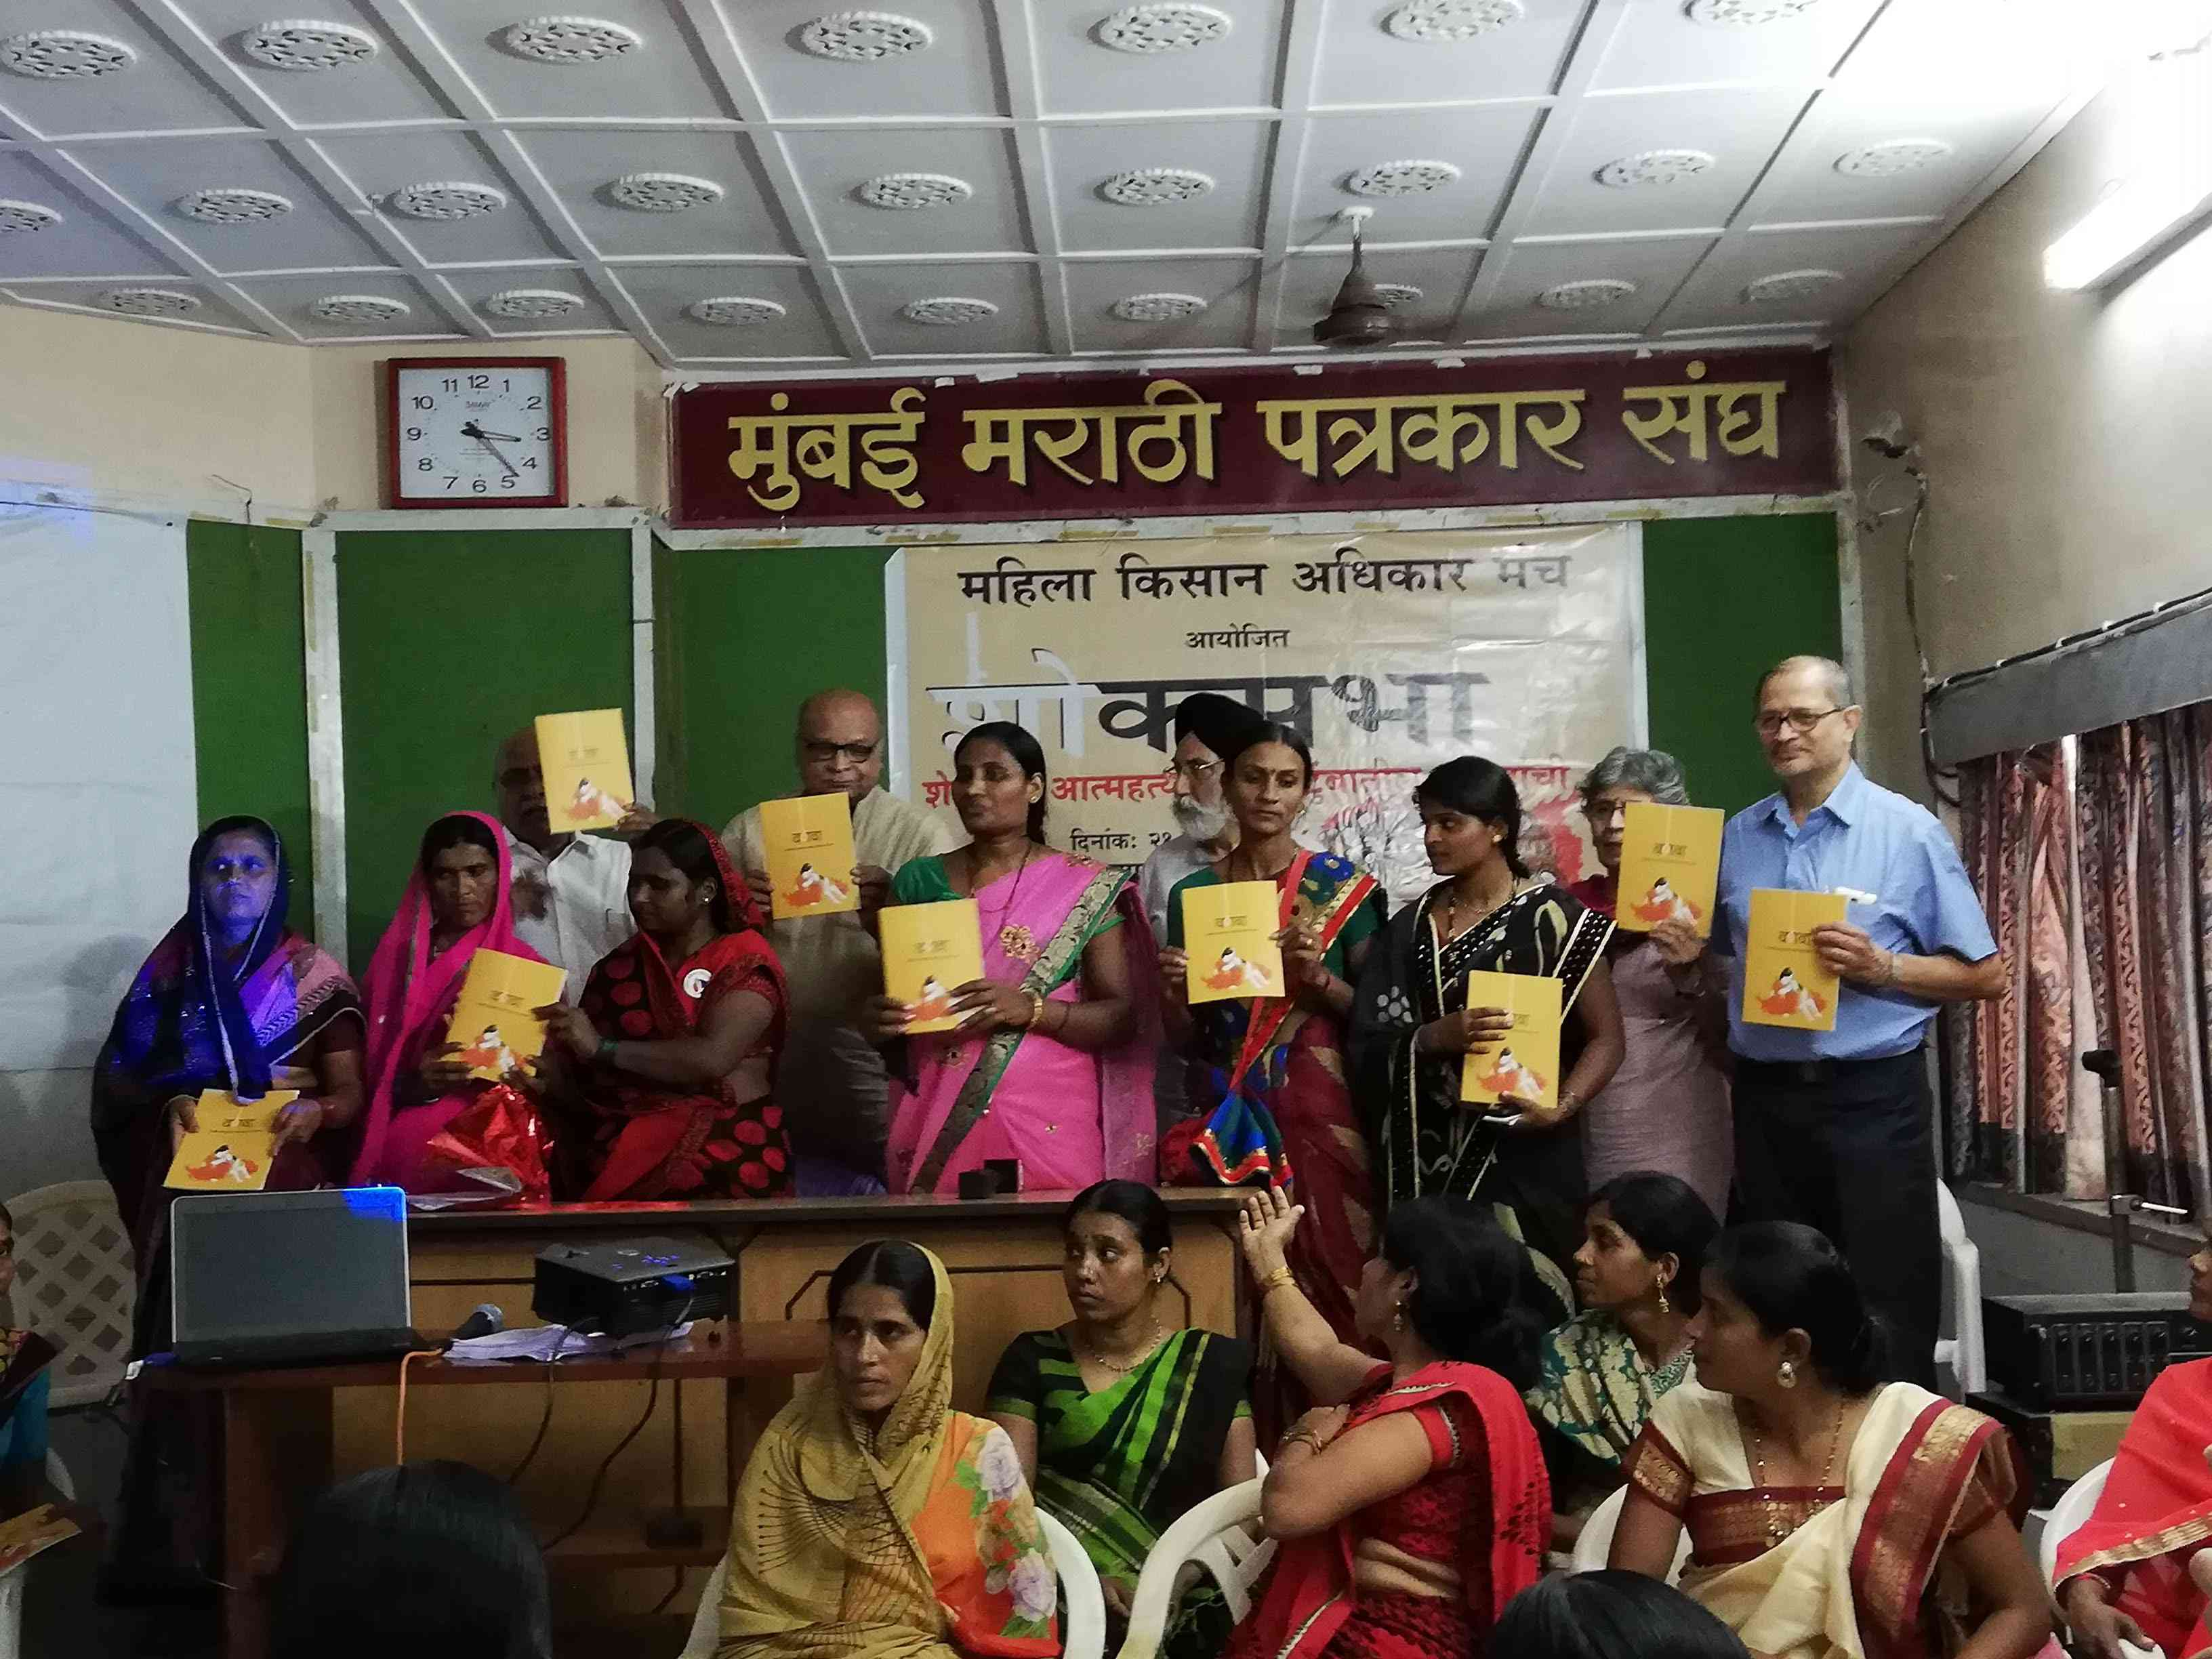 Women hold up copies of their testimonies at the press conference. (Photo credit: Mridula Chari).